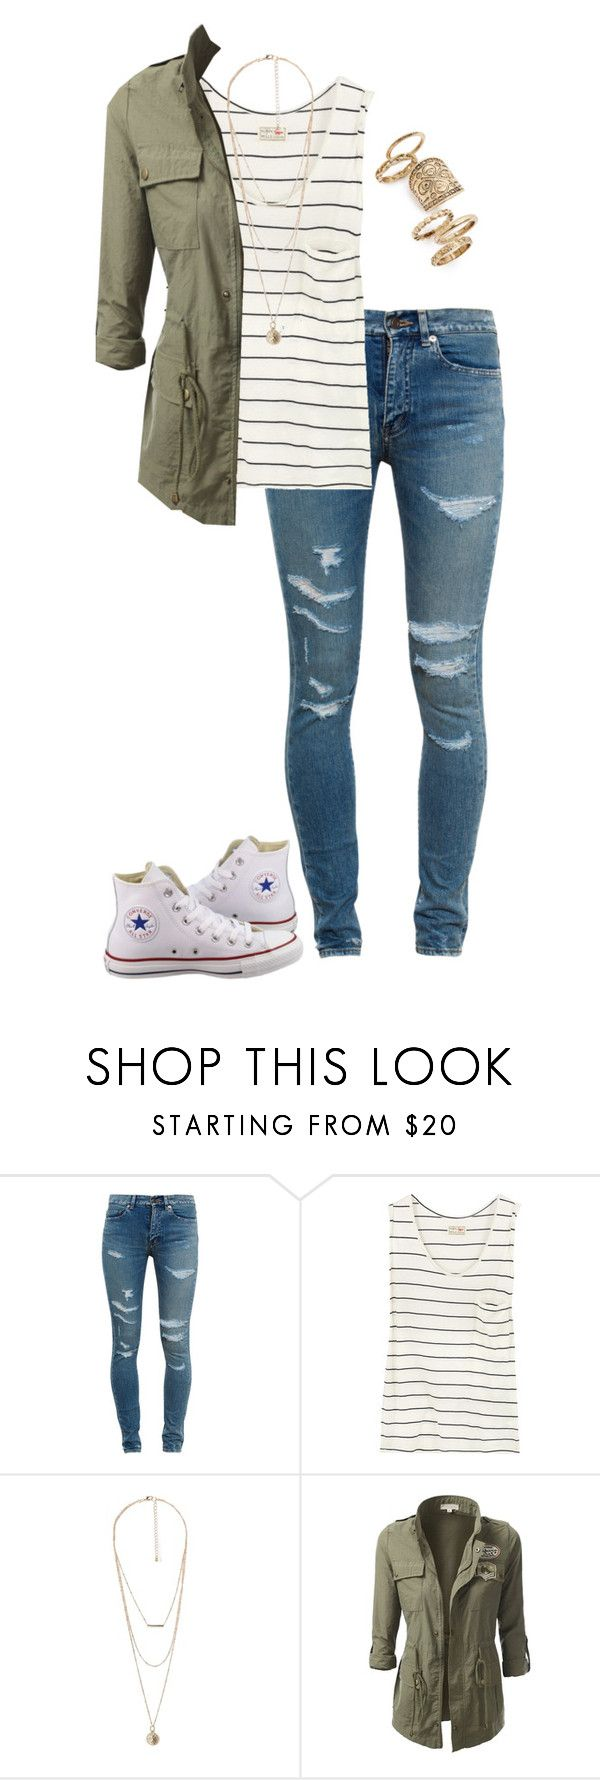 """""""A whole new world"""" by madisonpeters00 ❤ liked on Polyvore featuring Yves Saint Laurent, Aubin & Wills, MANGO, J.TOMSON, Topshop and Converse"""